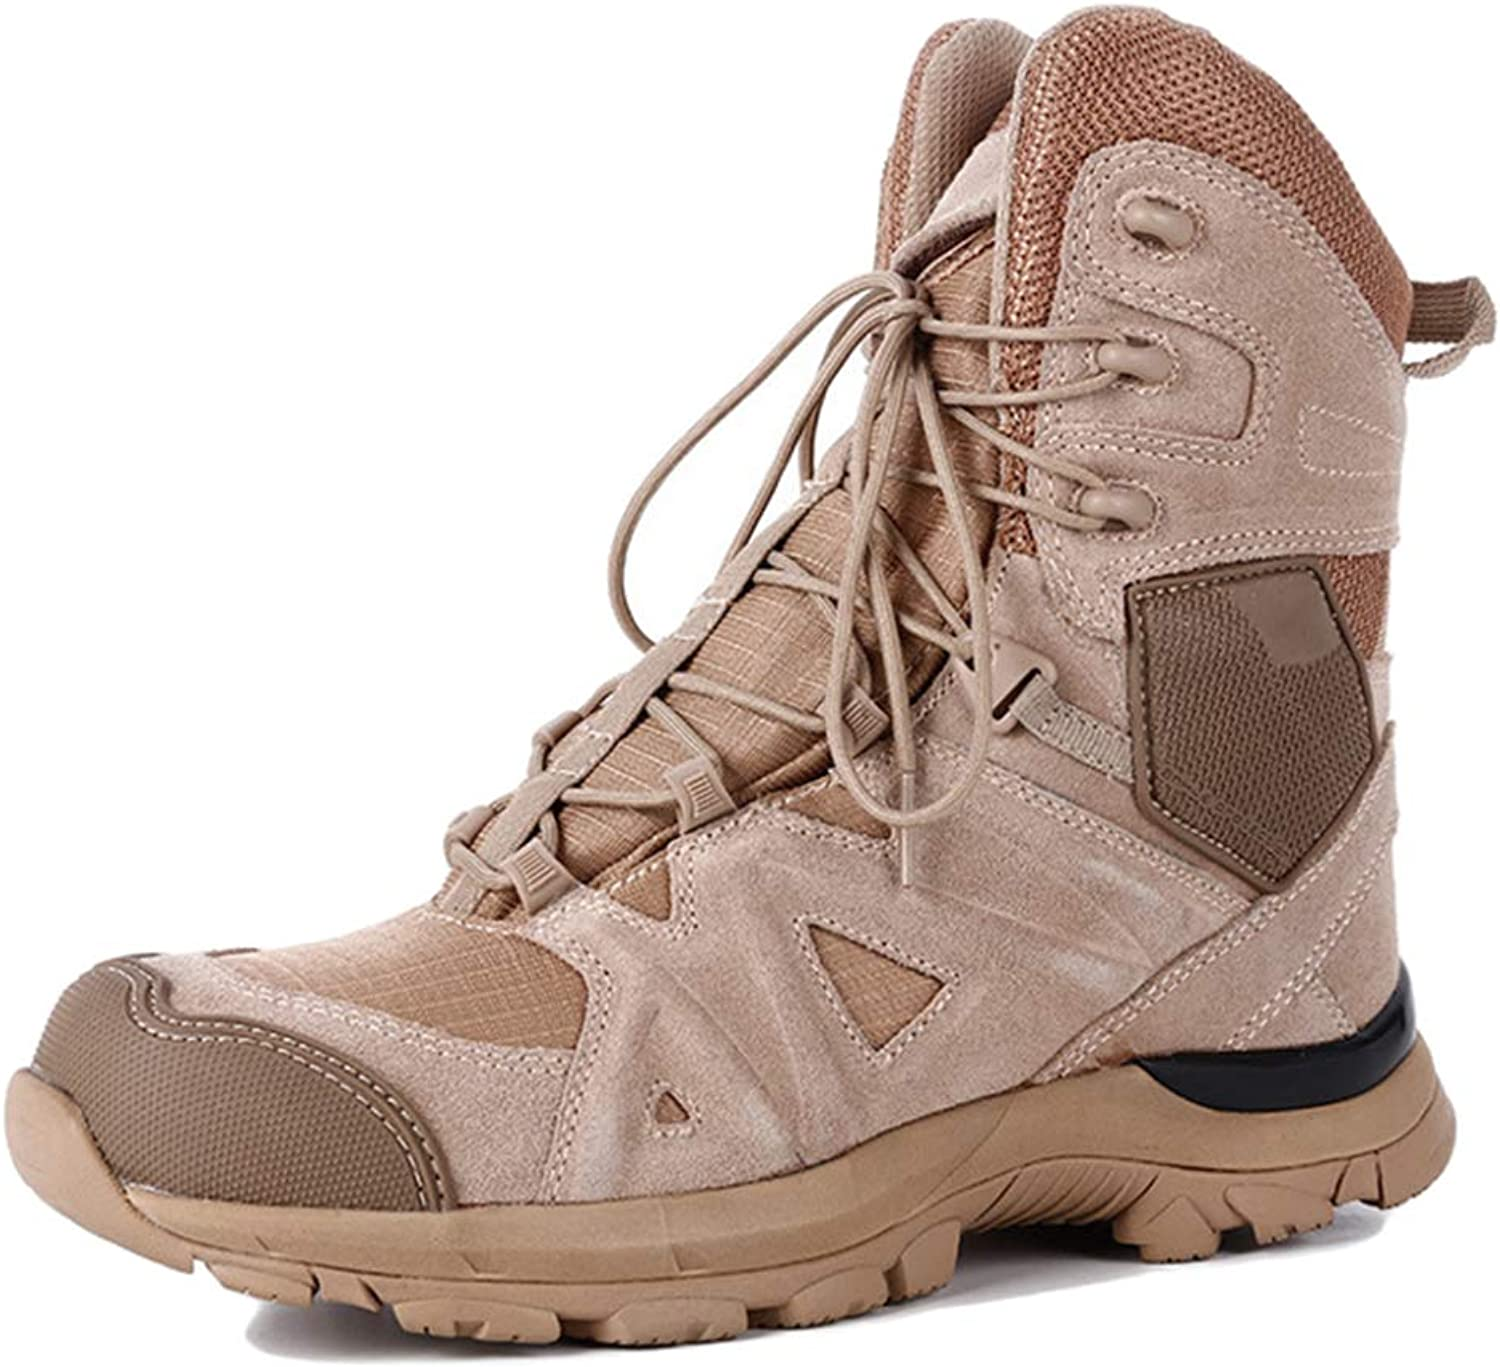 YC Mens Combat Boots High Tops Outdoor Tactical Boots Crash Toe Lace Ups Desert Boots For Police Hiking Treking Military Patrol shoes